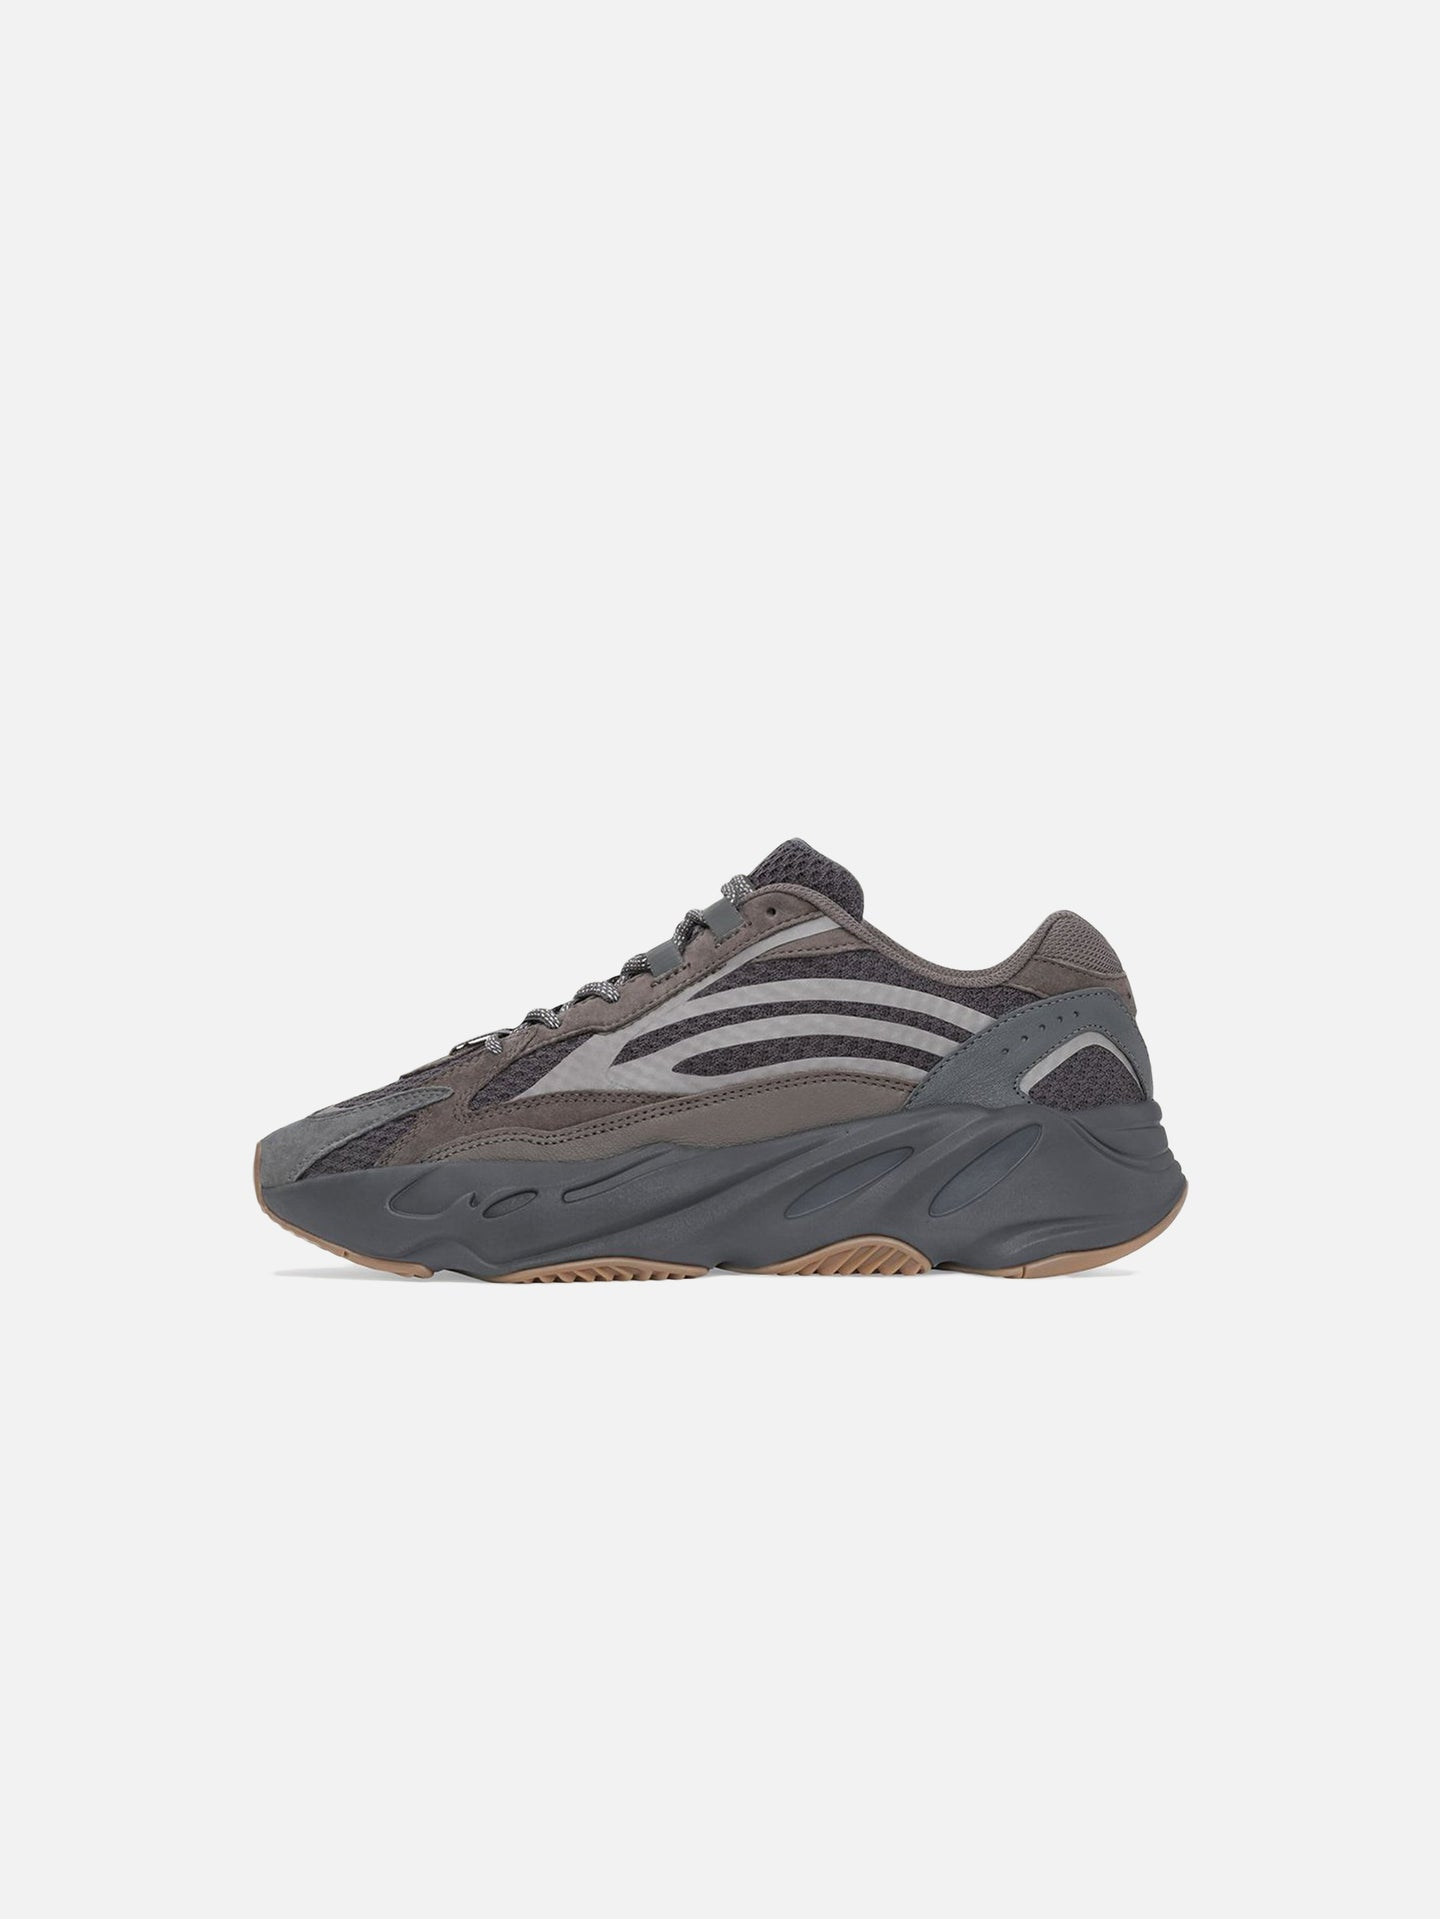 a32346f06 Adidas by Kanye West Yeezy Boost 700 V2  Geode (W)